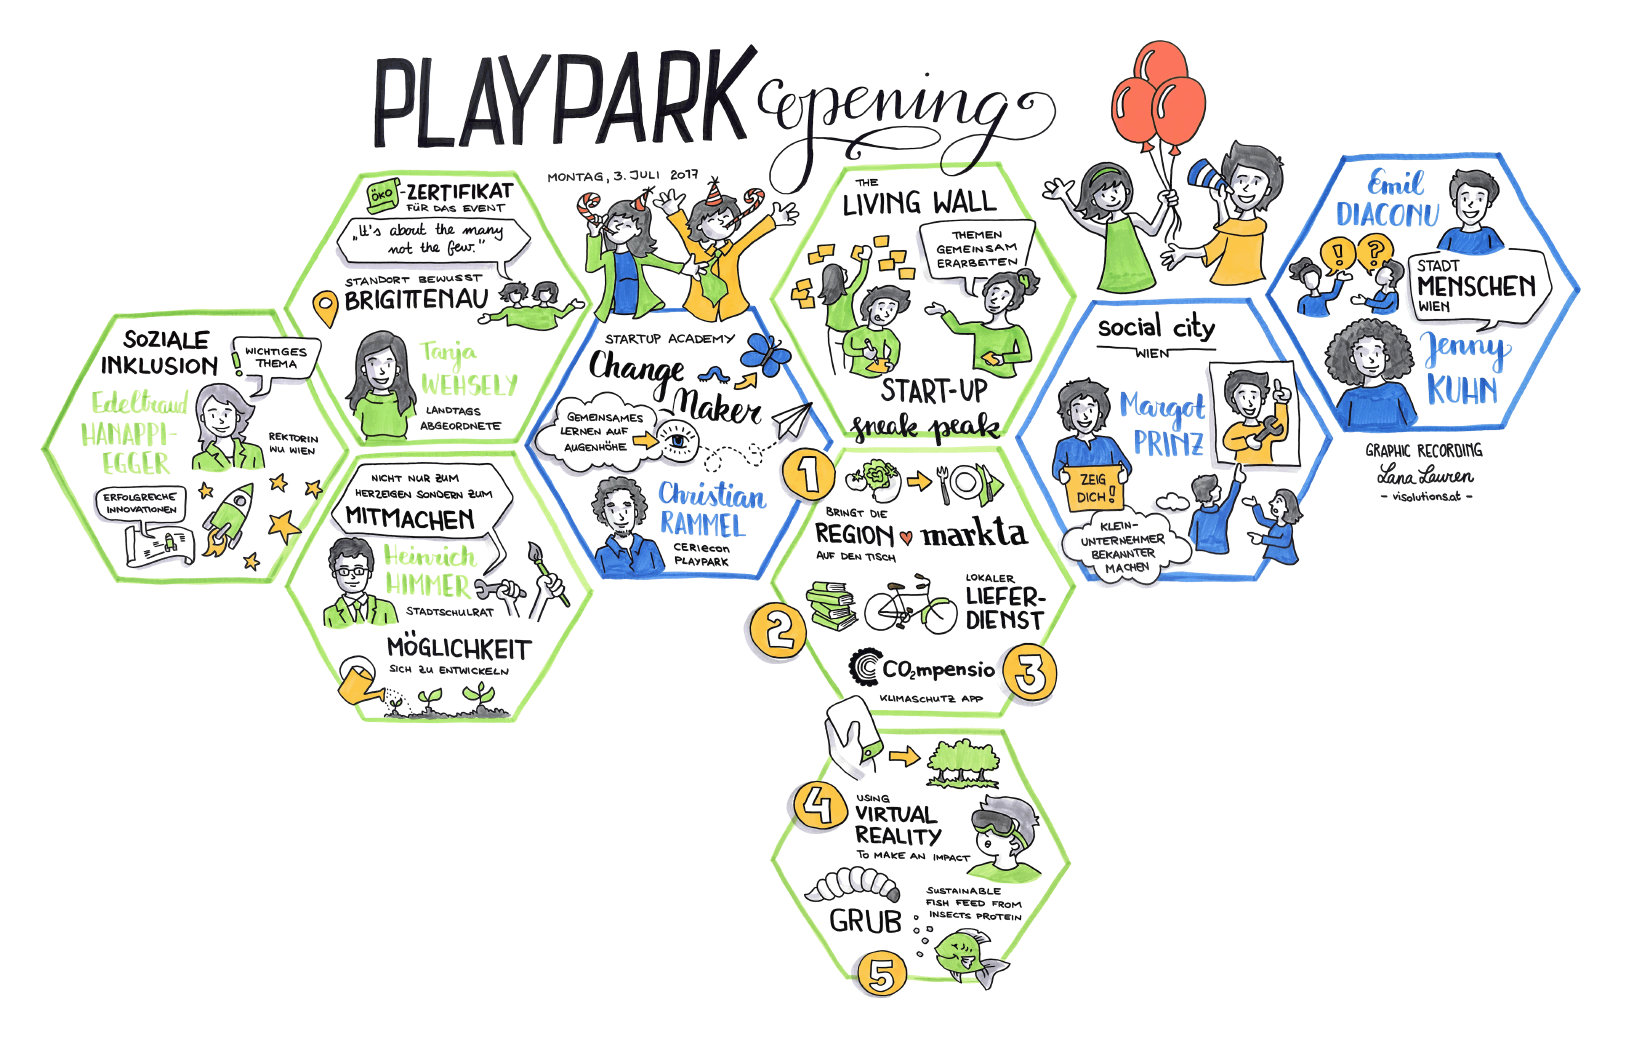 Playpark-opening.png